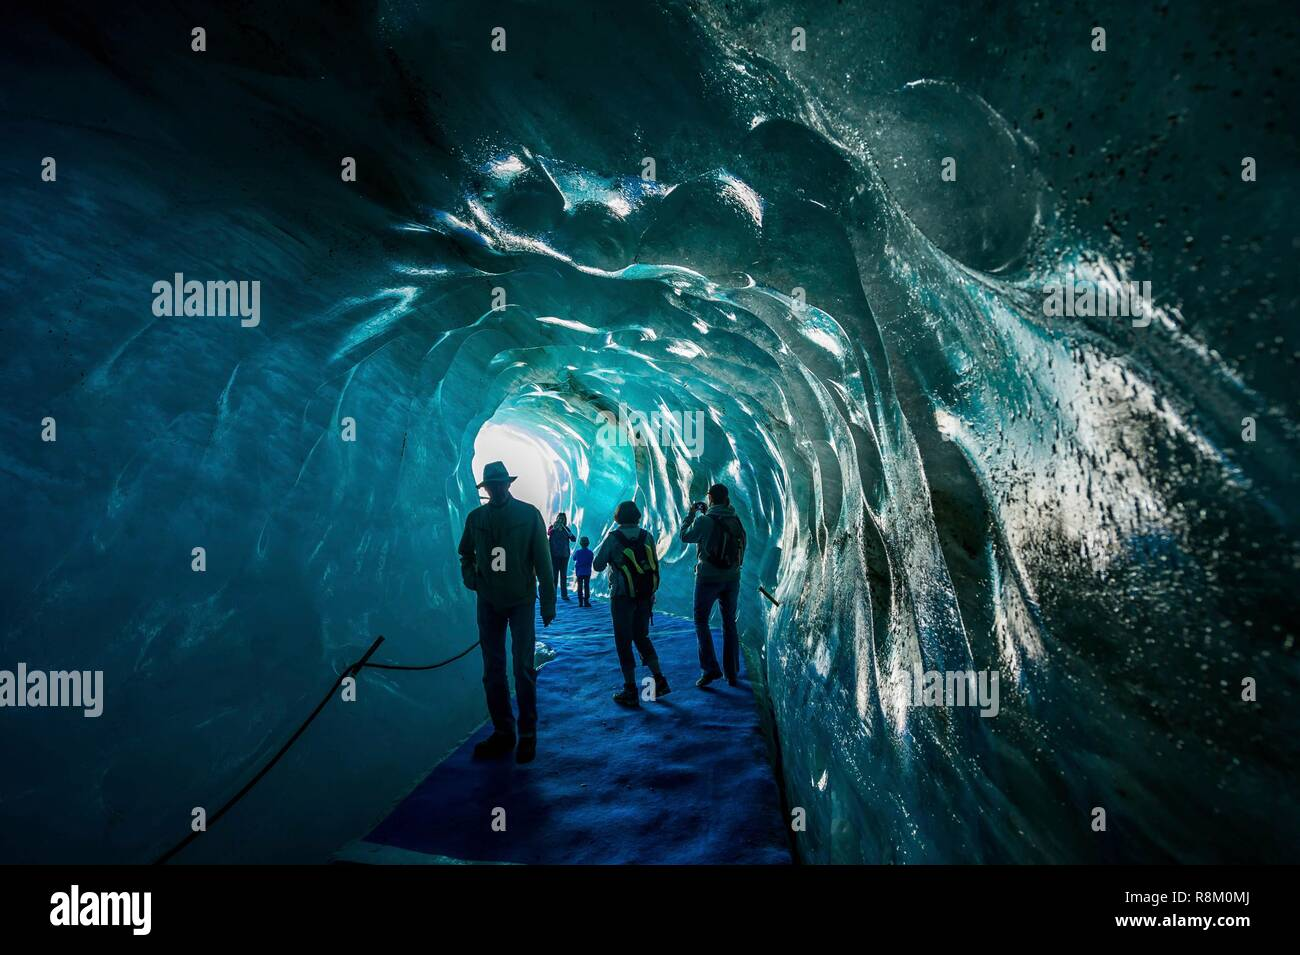 France, Chamonix-Mont Blanc, Haute-Savoie, Montenvers station, ice cave, carved within the Mer de Glace - Stock Image